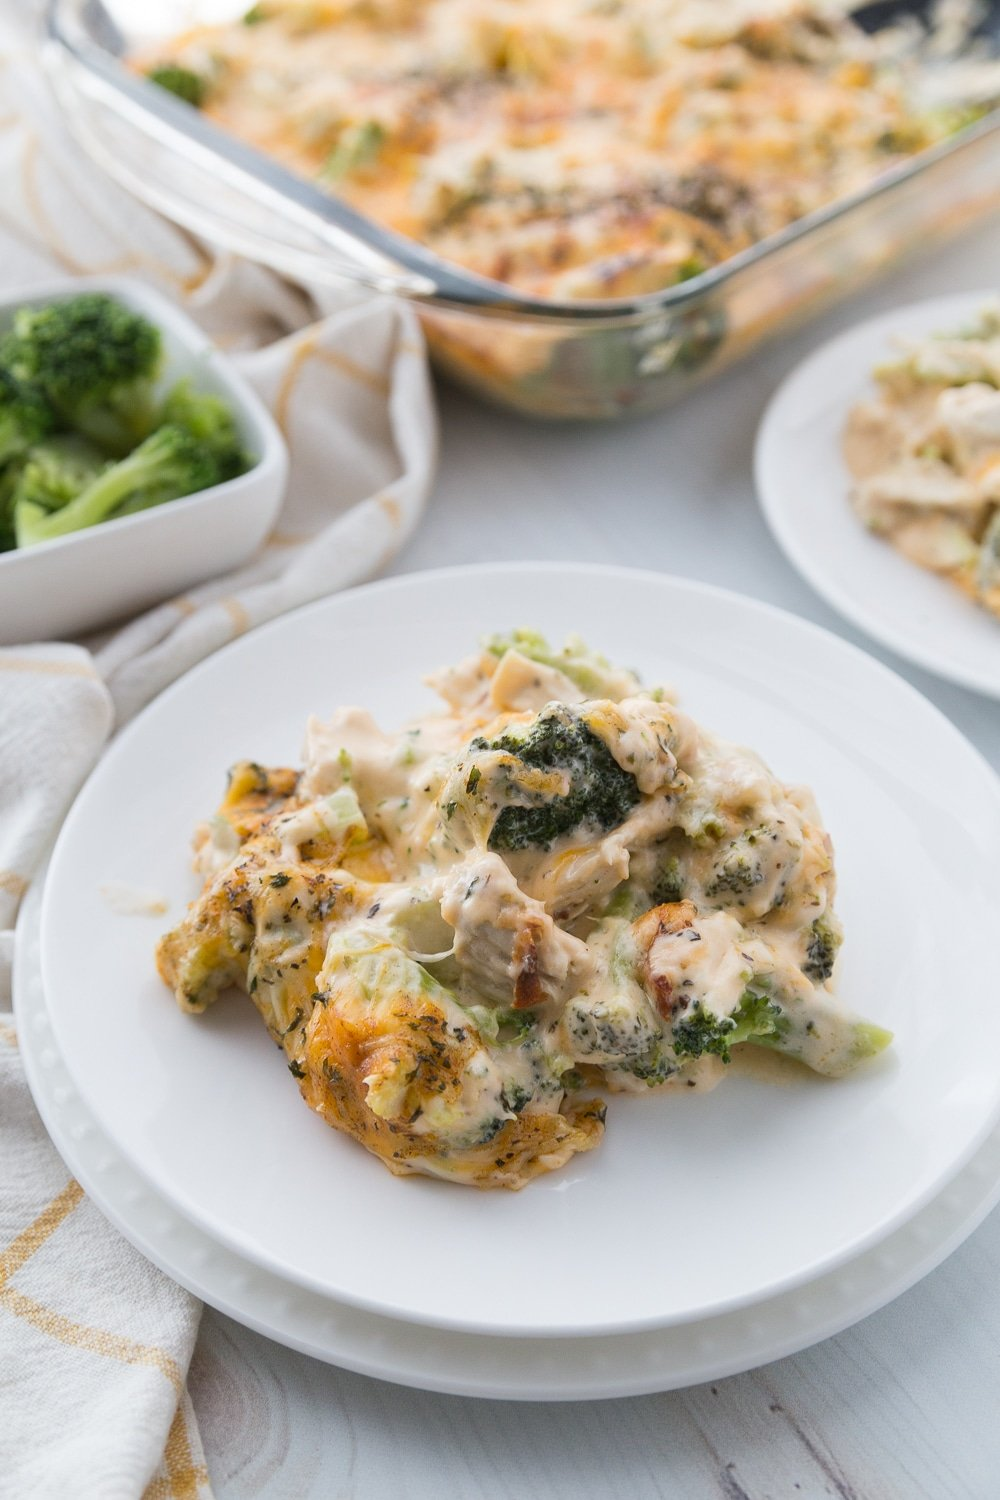 This simple Low Carb Chicken Casserole is packed full of delicious chicken, broccoli, and cheese. The entire family will enjoy. #keto #lowcarb